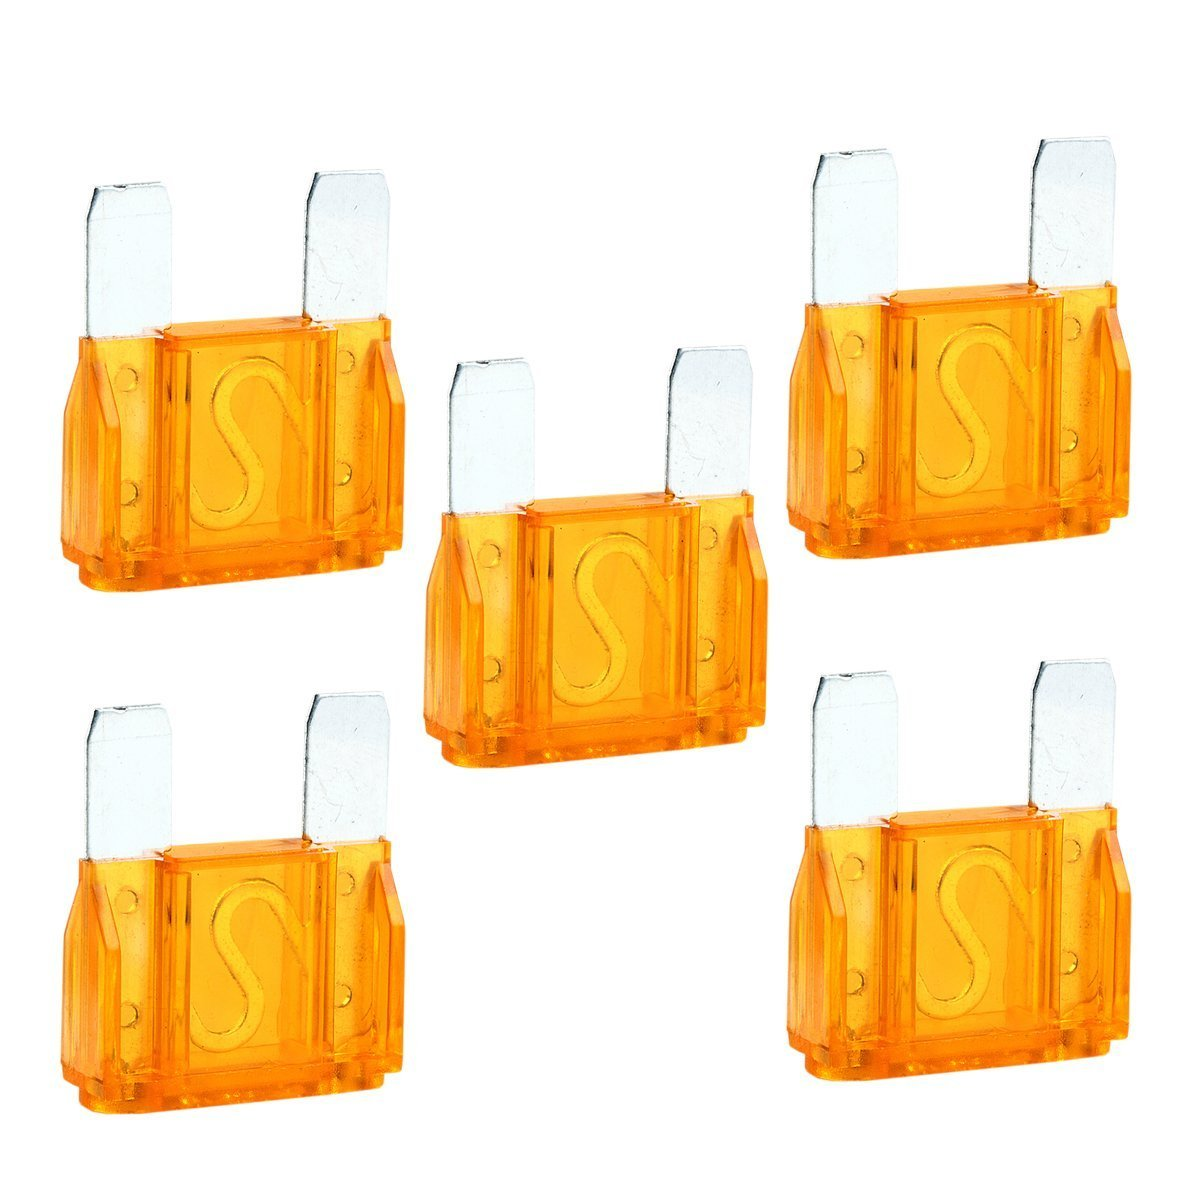 5 Pcs 80 Amp Large Blade Style Maxi Fuse for Car RV Boat Auto